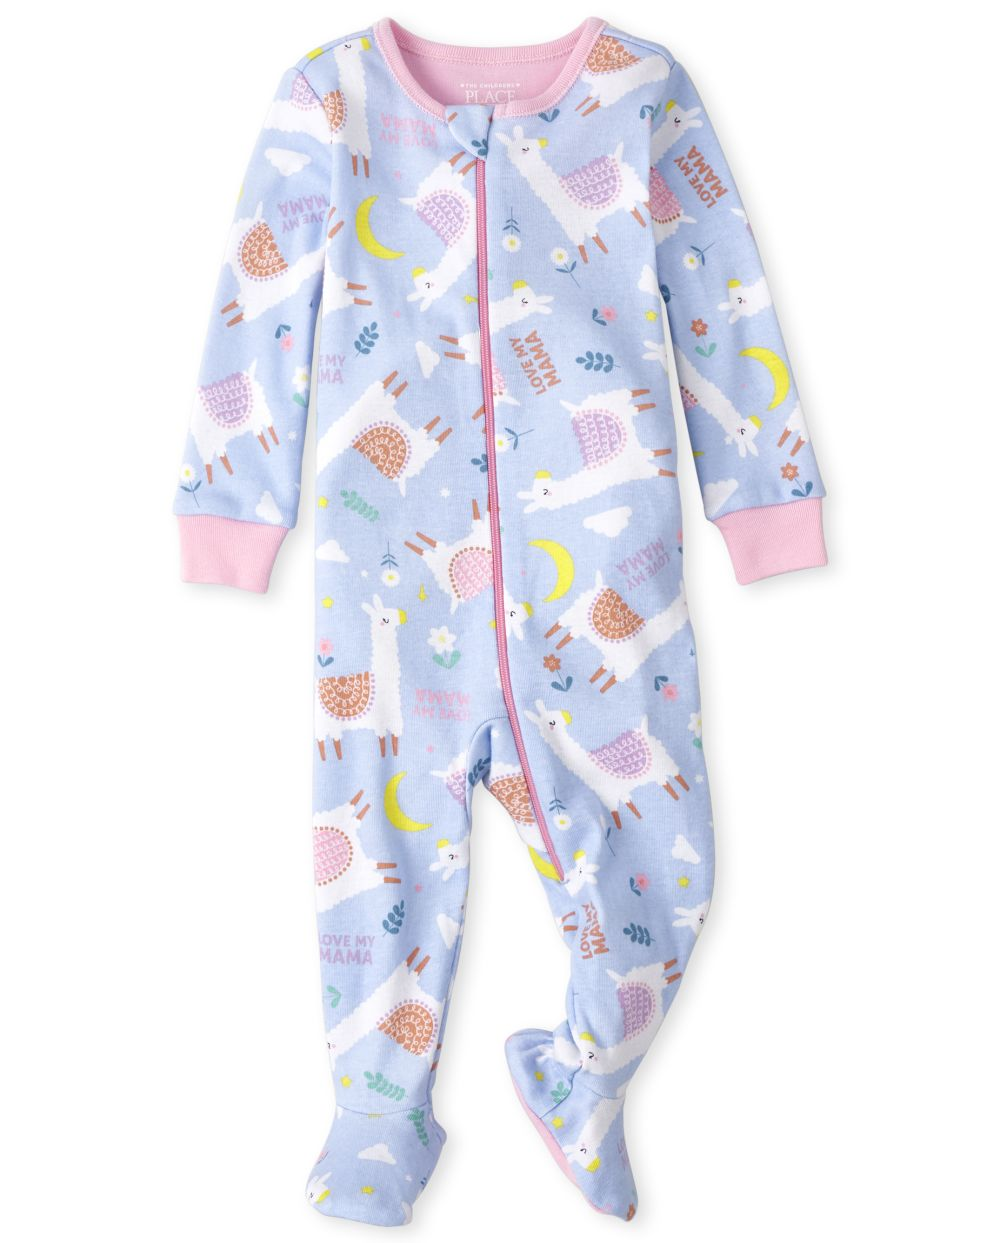 Baby And Toddler Llama Snug Fit Cotton One Piece Pajamas - Blue